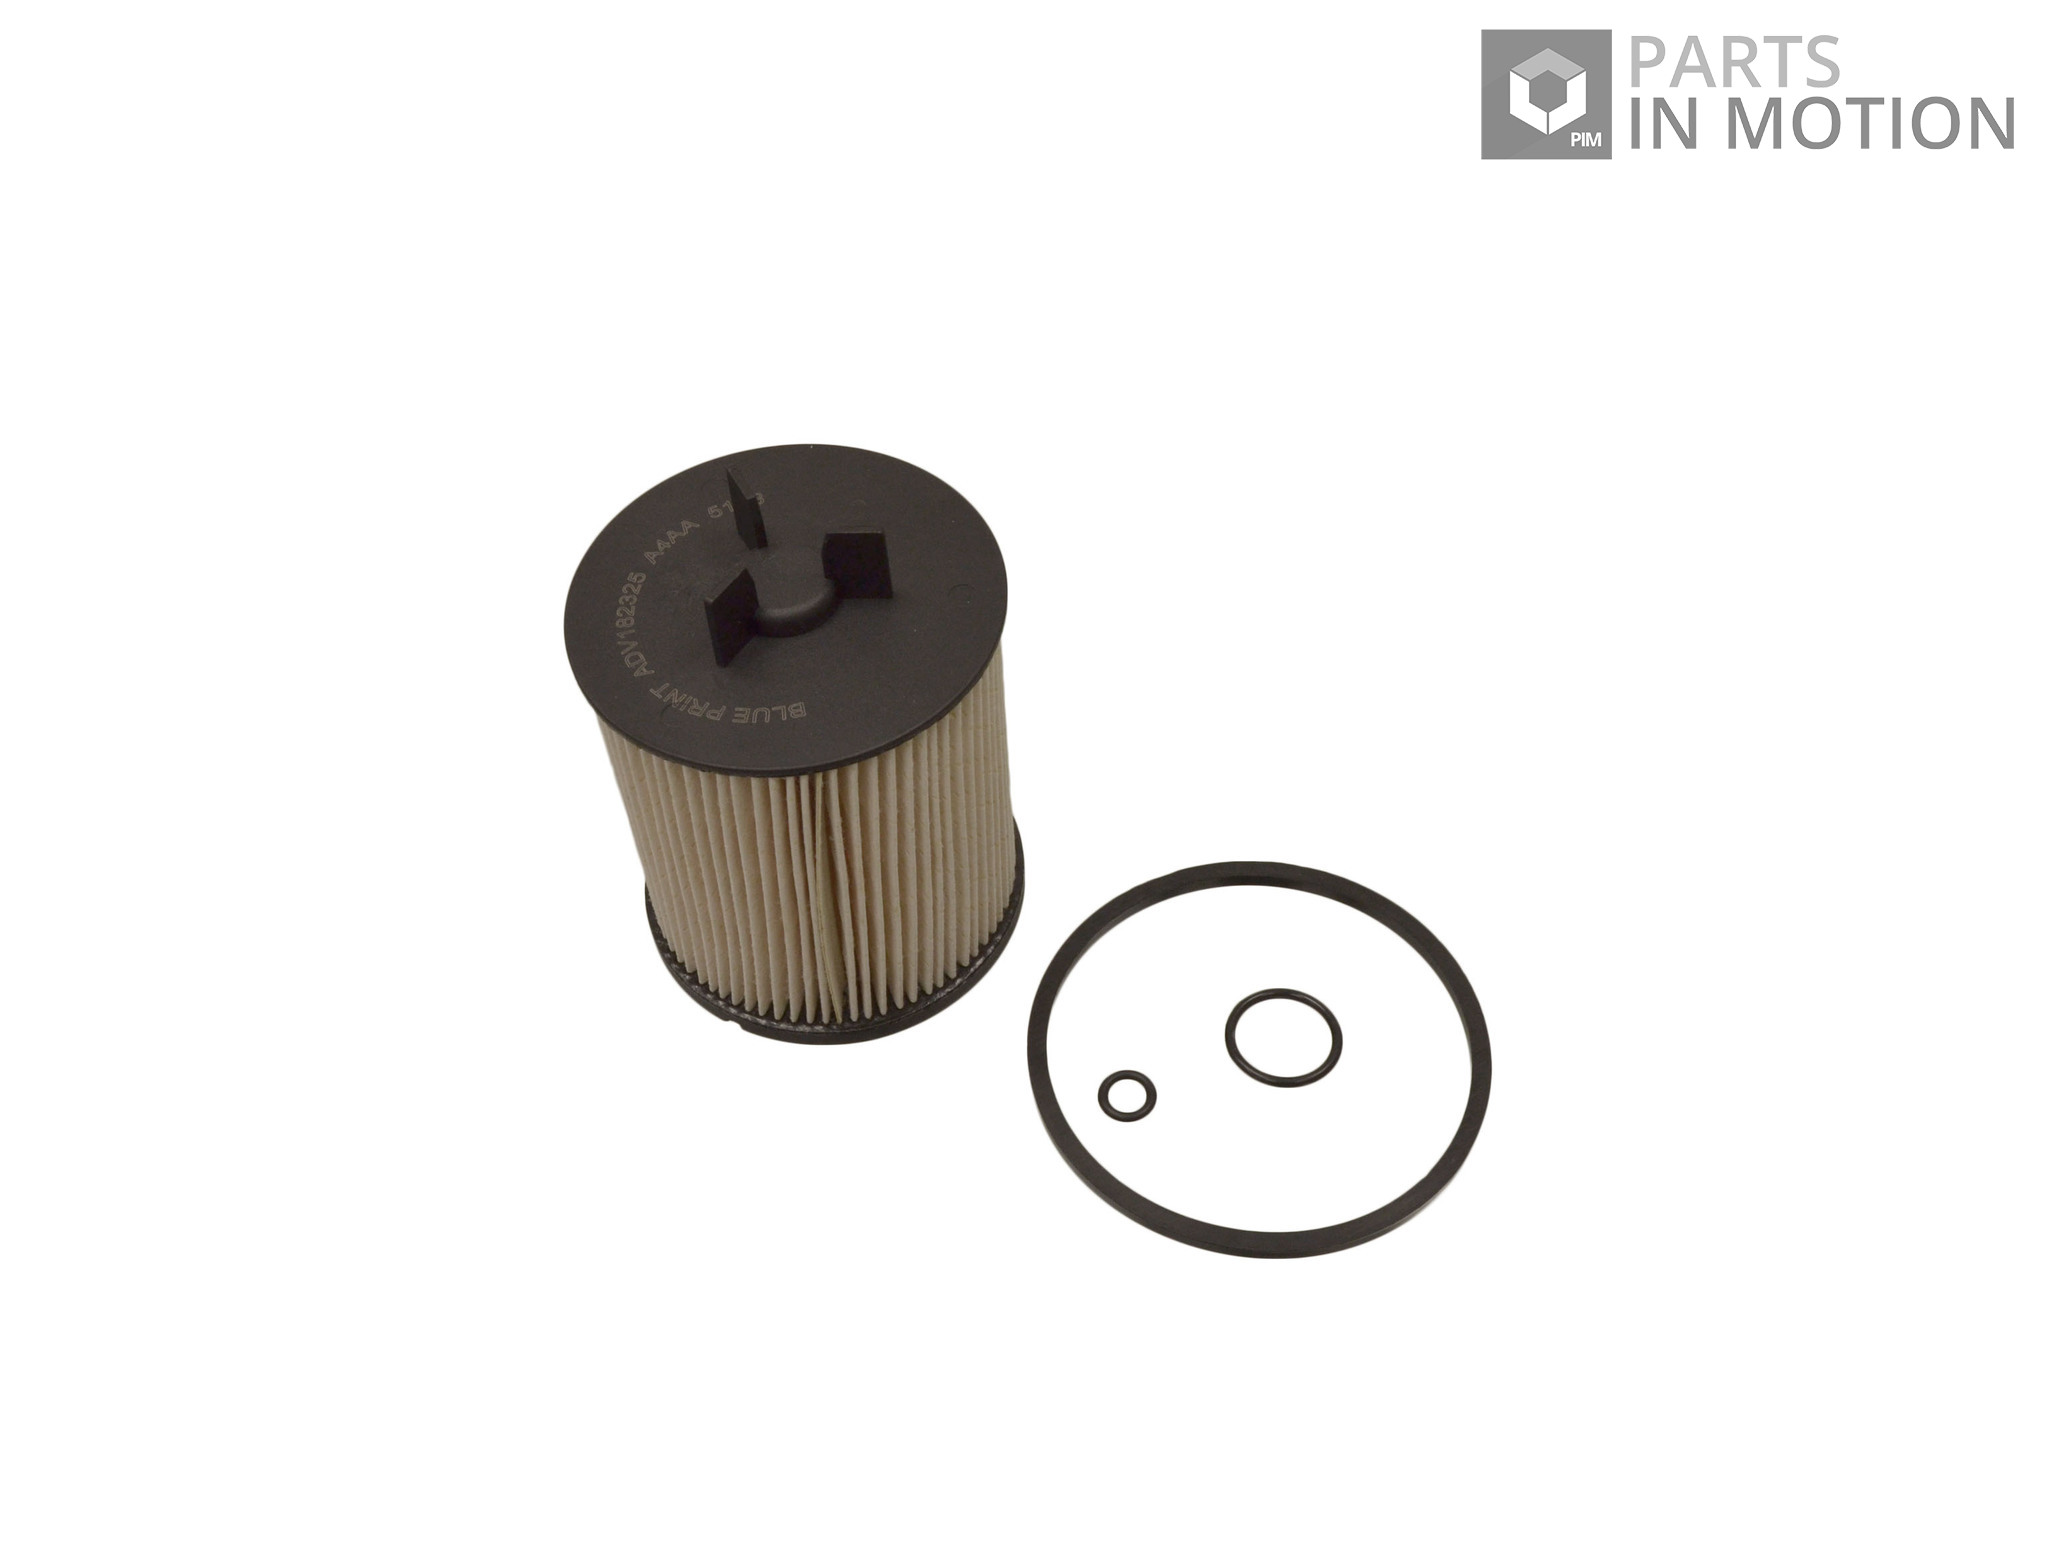 Audi A2 8z 14d Fuel Filter 00 To 05 Adl 8z0198567 8z0127435a Alco Filters Image Is Loading 1 4d